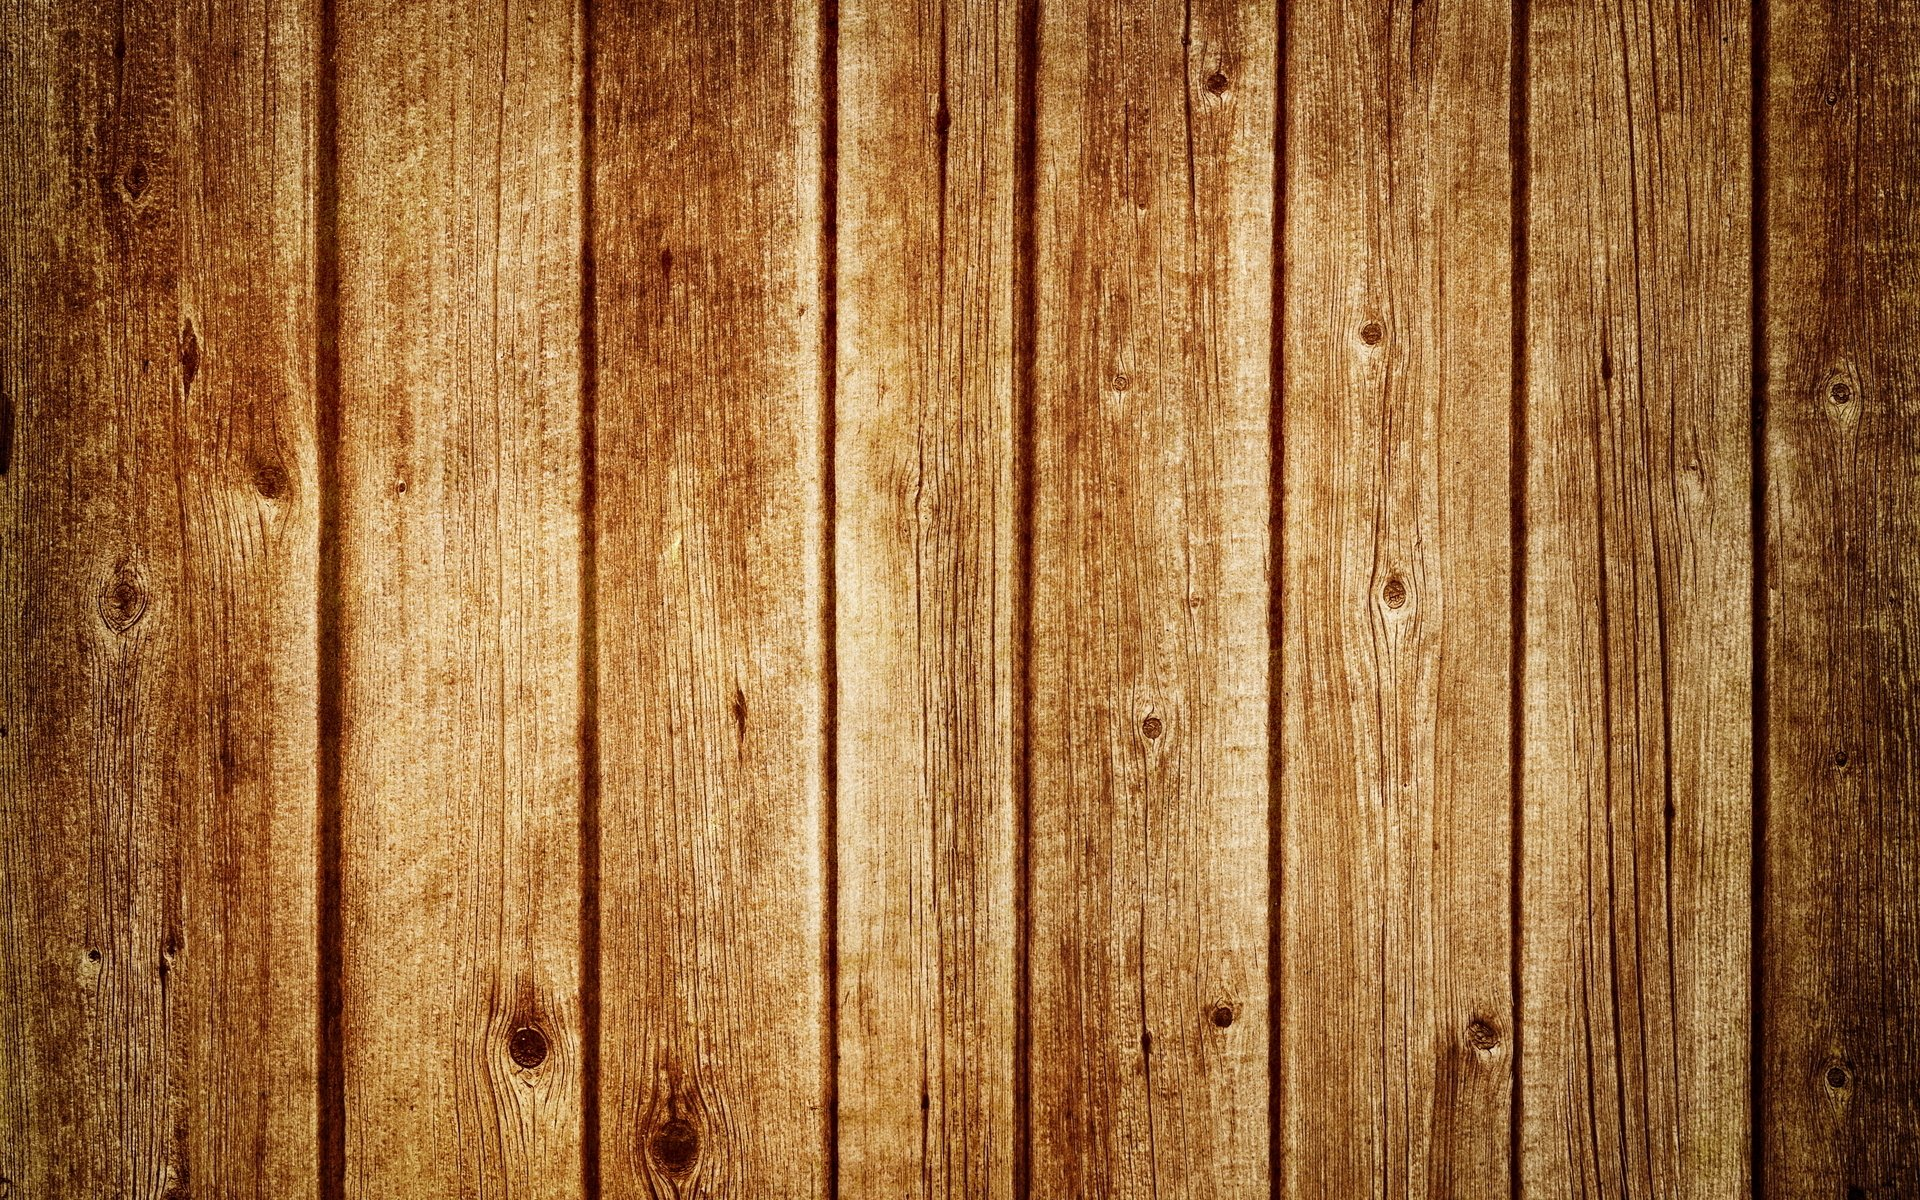 Board Wood Tree Macro HD Wallpaper 3D Abstract Wallpapers 1920x1200